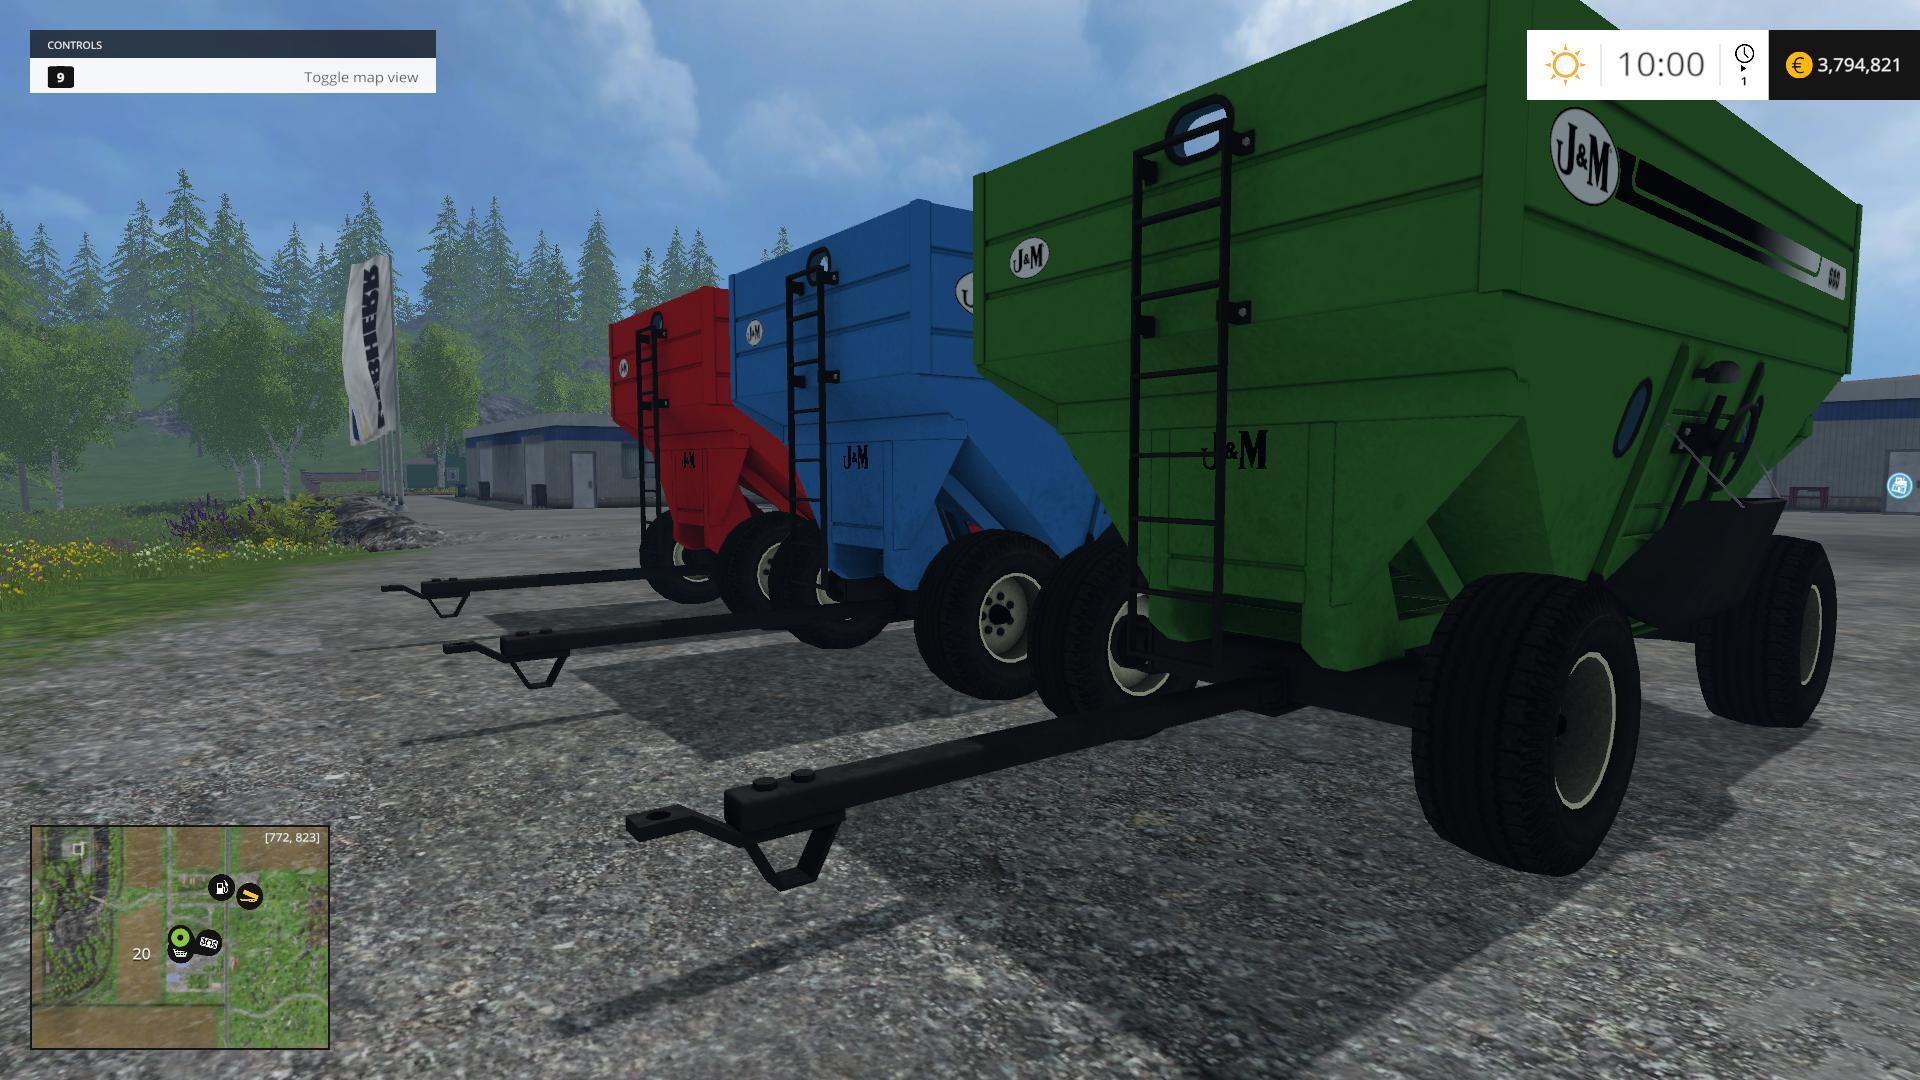 WAGONS Archives • Farming simulator 19, 17, 15 mods | FS19